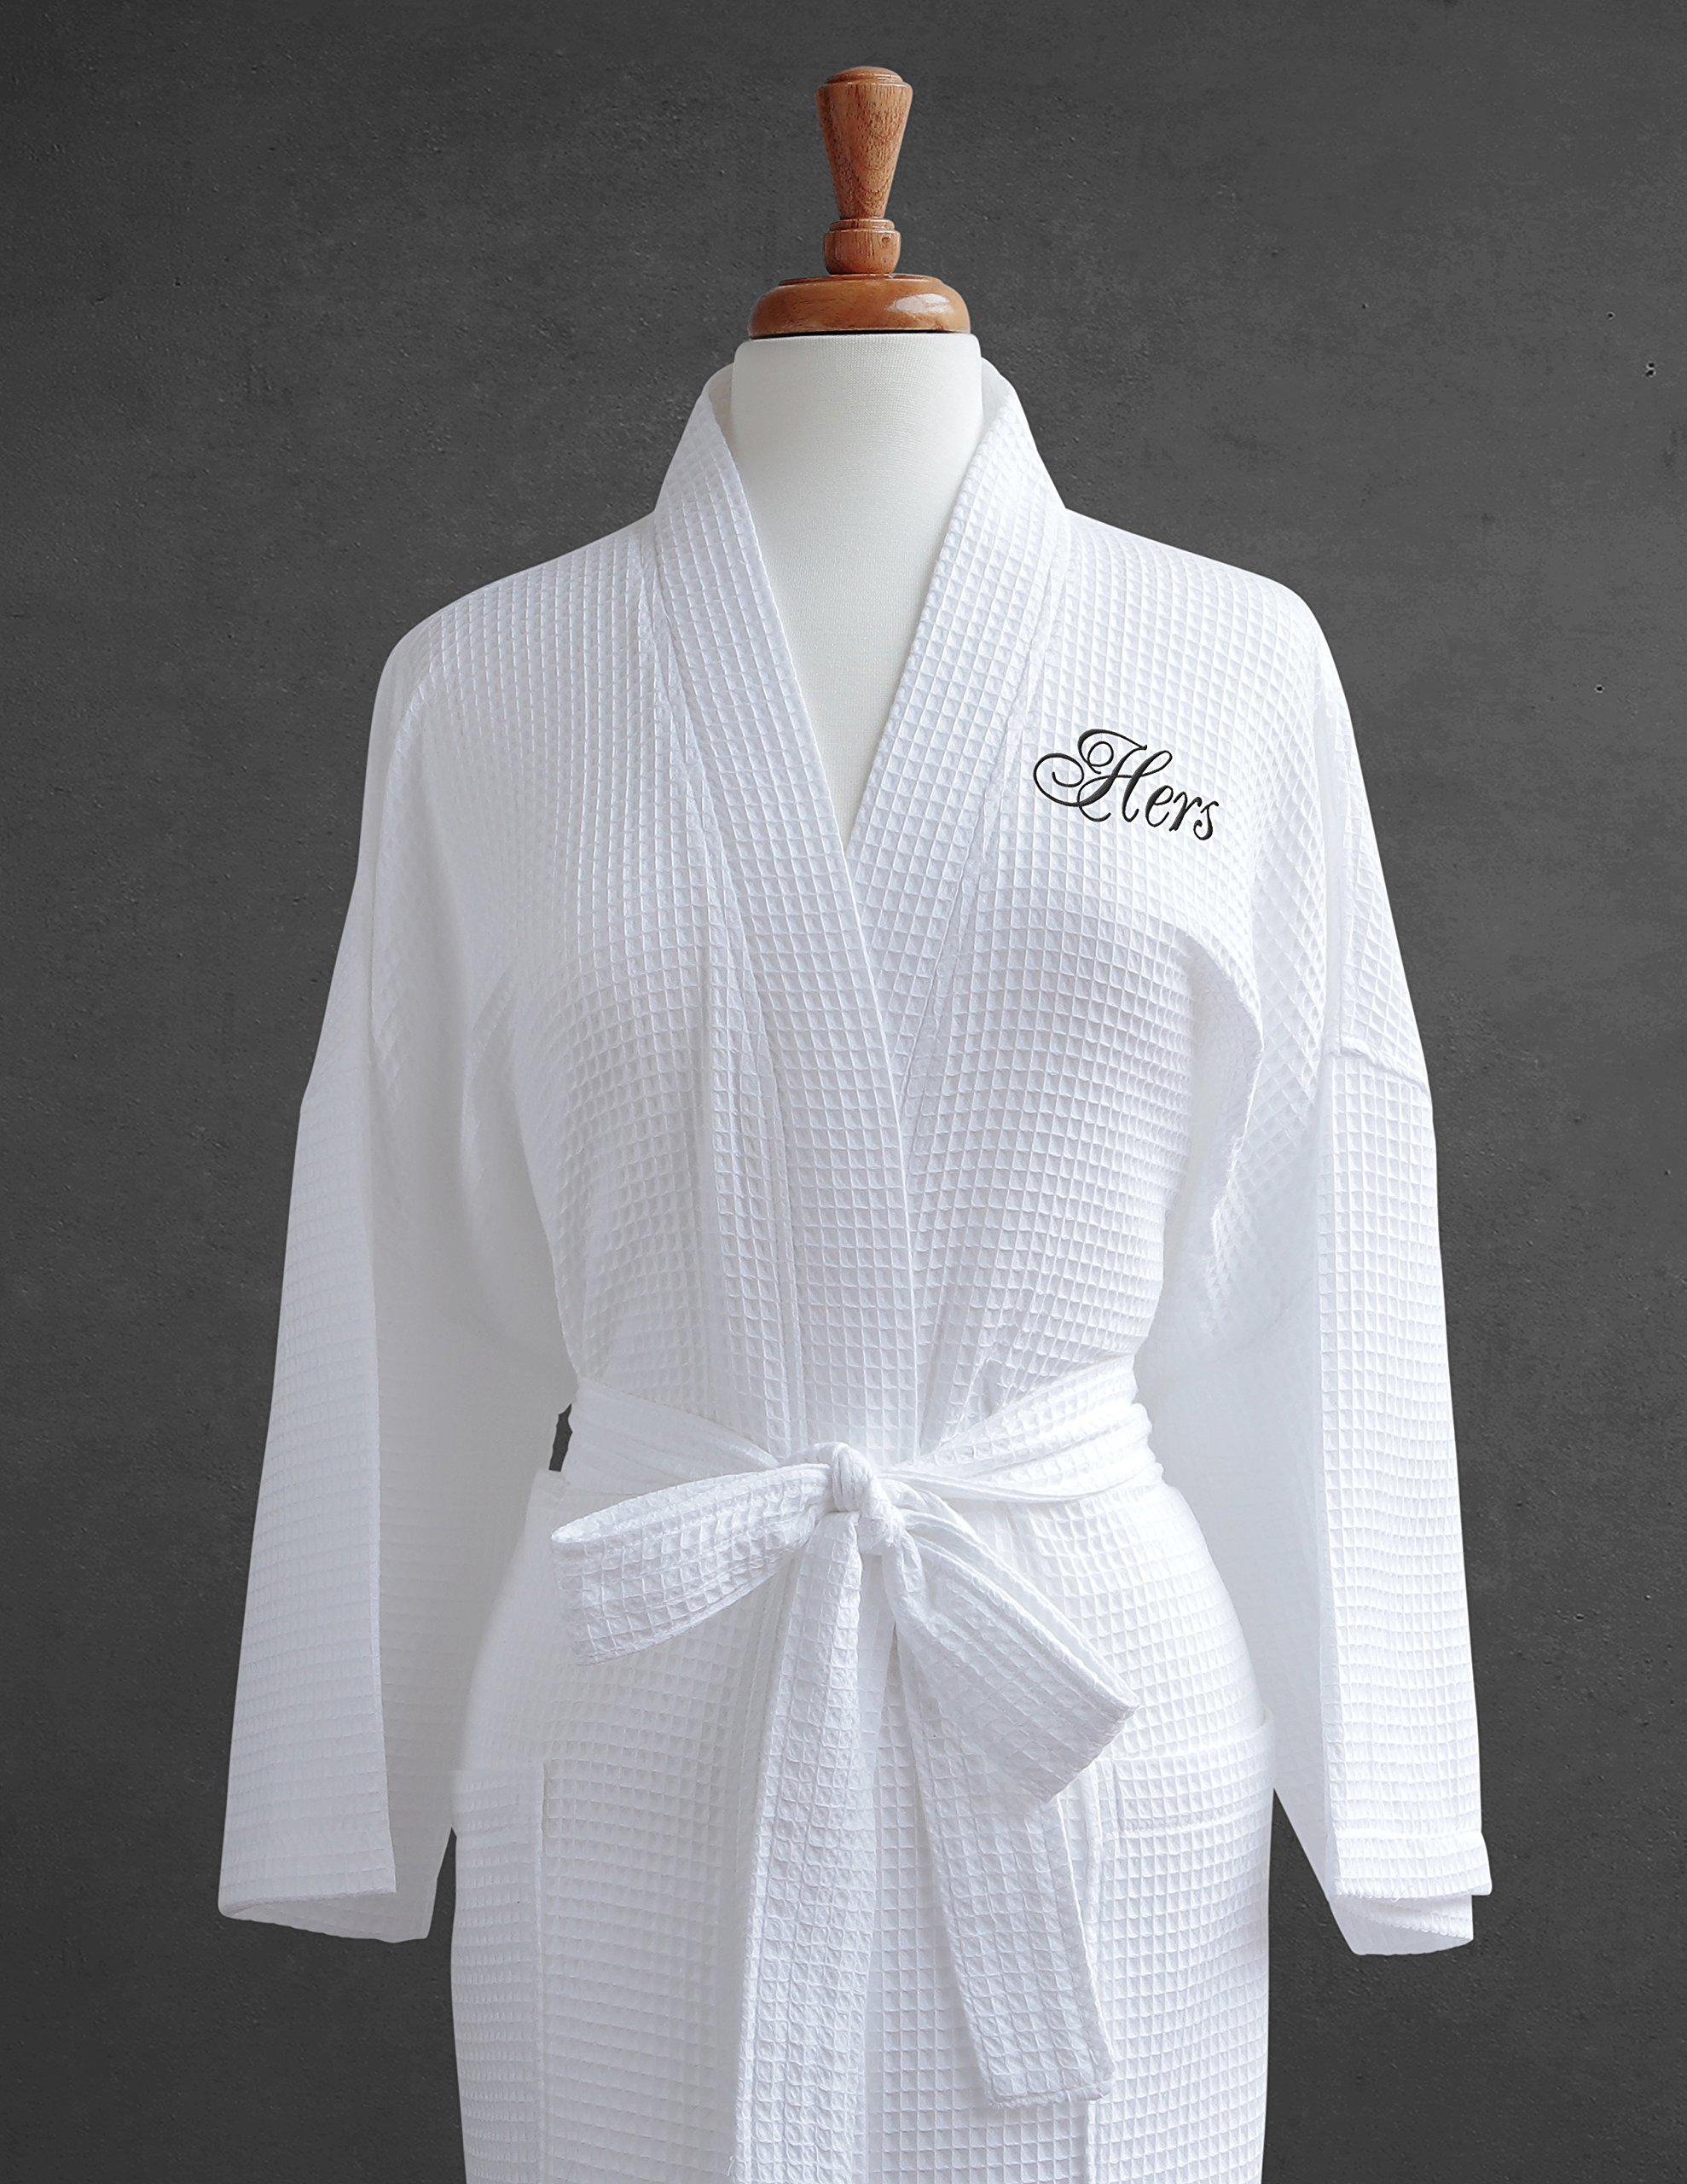 0d5d8b4a6c Luxor Linens Egyptian Cotton Hers Waffle Weave Robe - Perfect Wedding Gift!  - Hers